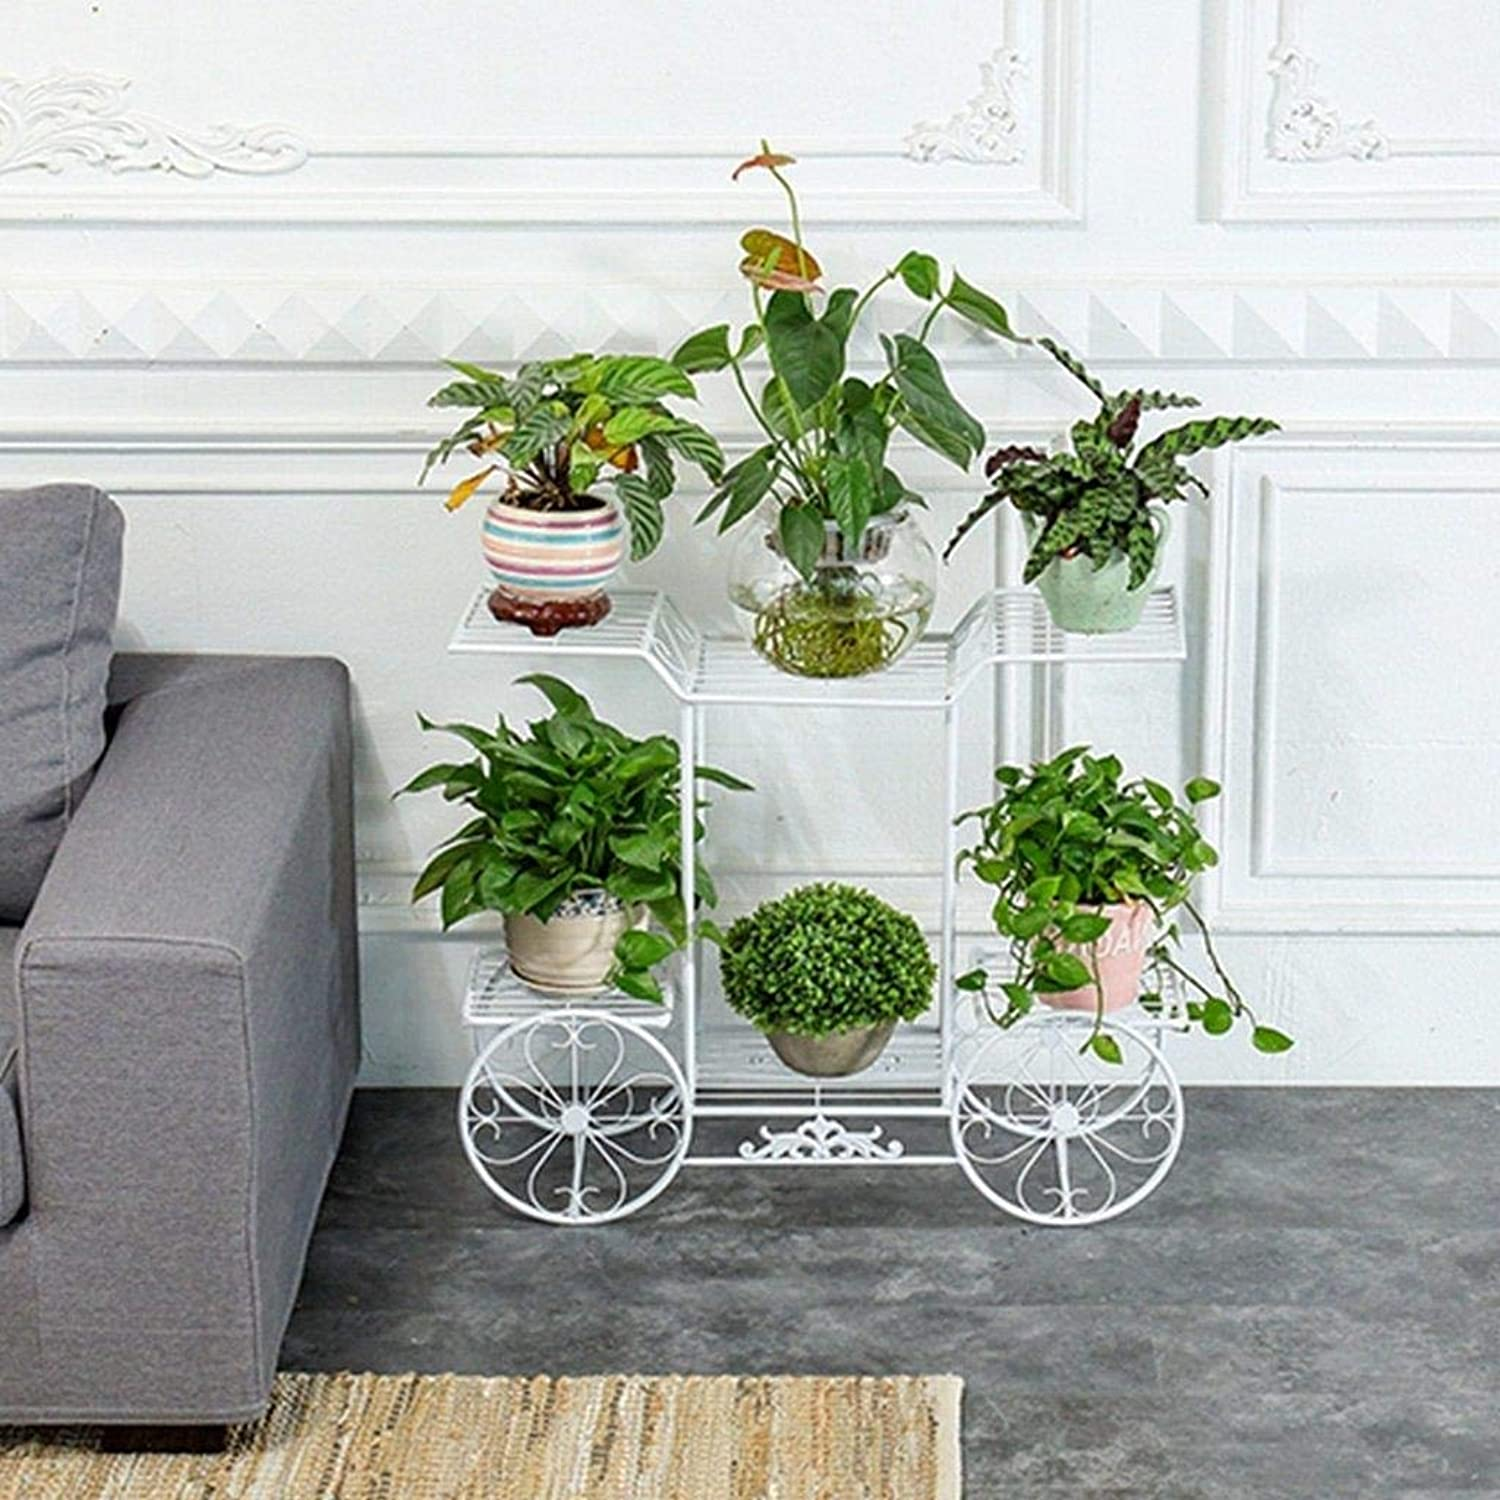 Flower Stand - Metal Garden Cart Stand and Flower Pot Plant Display Stand, 6 Storey, Paris Style - Suitable for Home, Garden, Courtyard - 78CM  25CM  75CM (color   White)